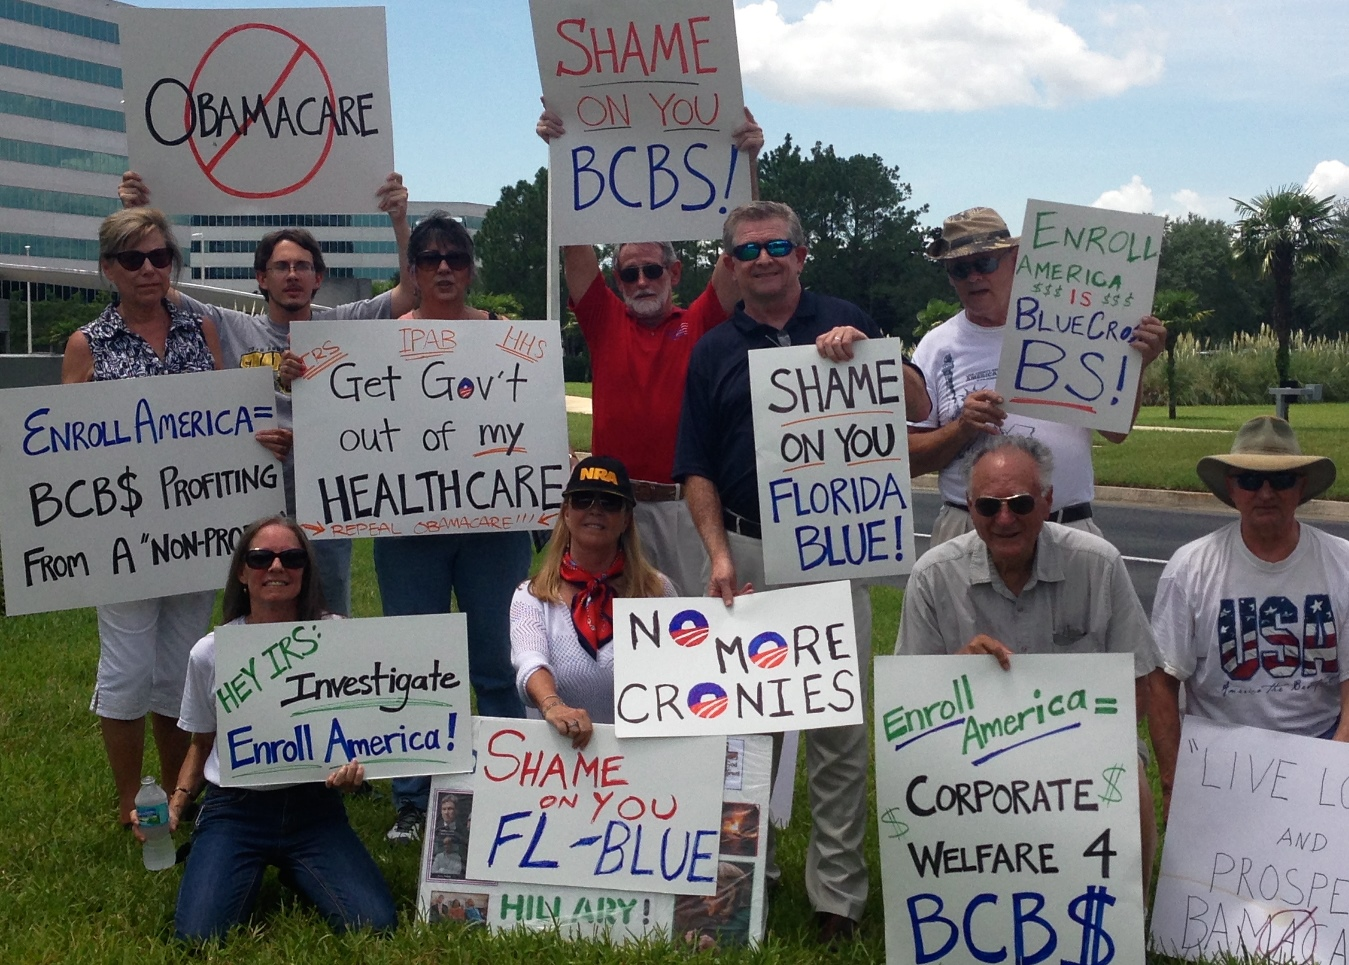 jaxrally AFP FL: Rallies Protesting Enroll America (Multiple Locations)